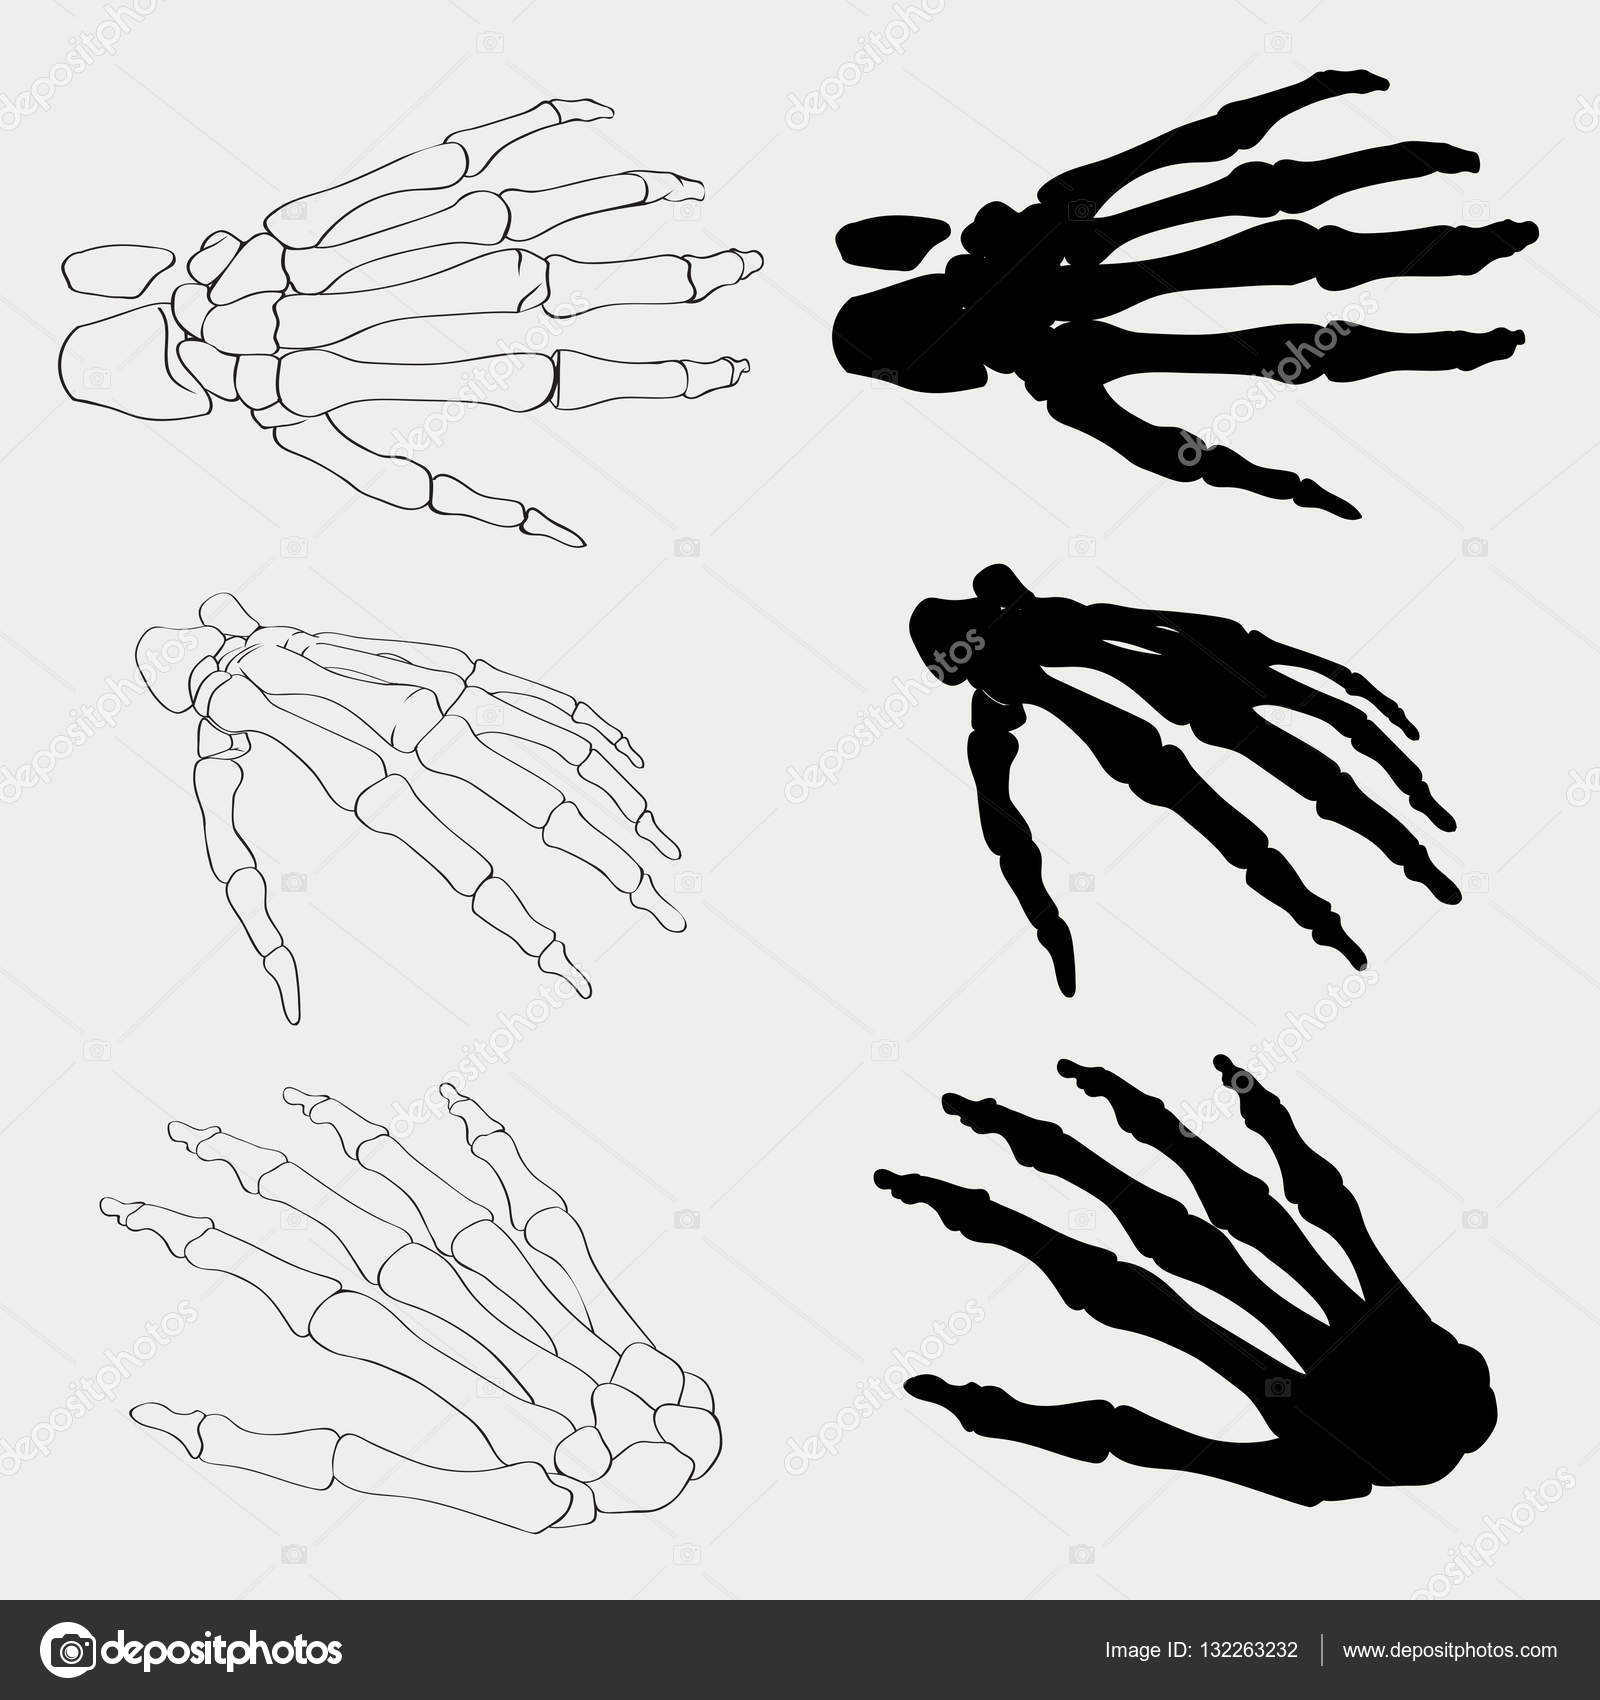 Human Hand Bones Anatomy Isolated Vector Illustration Black And